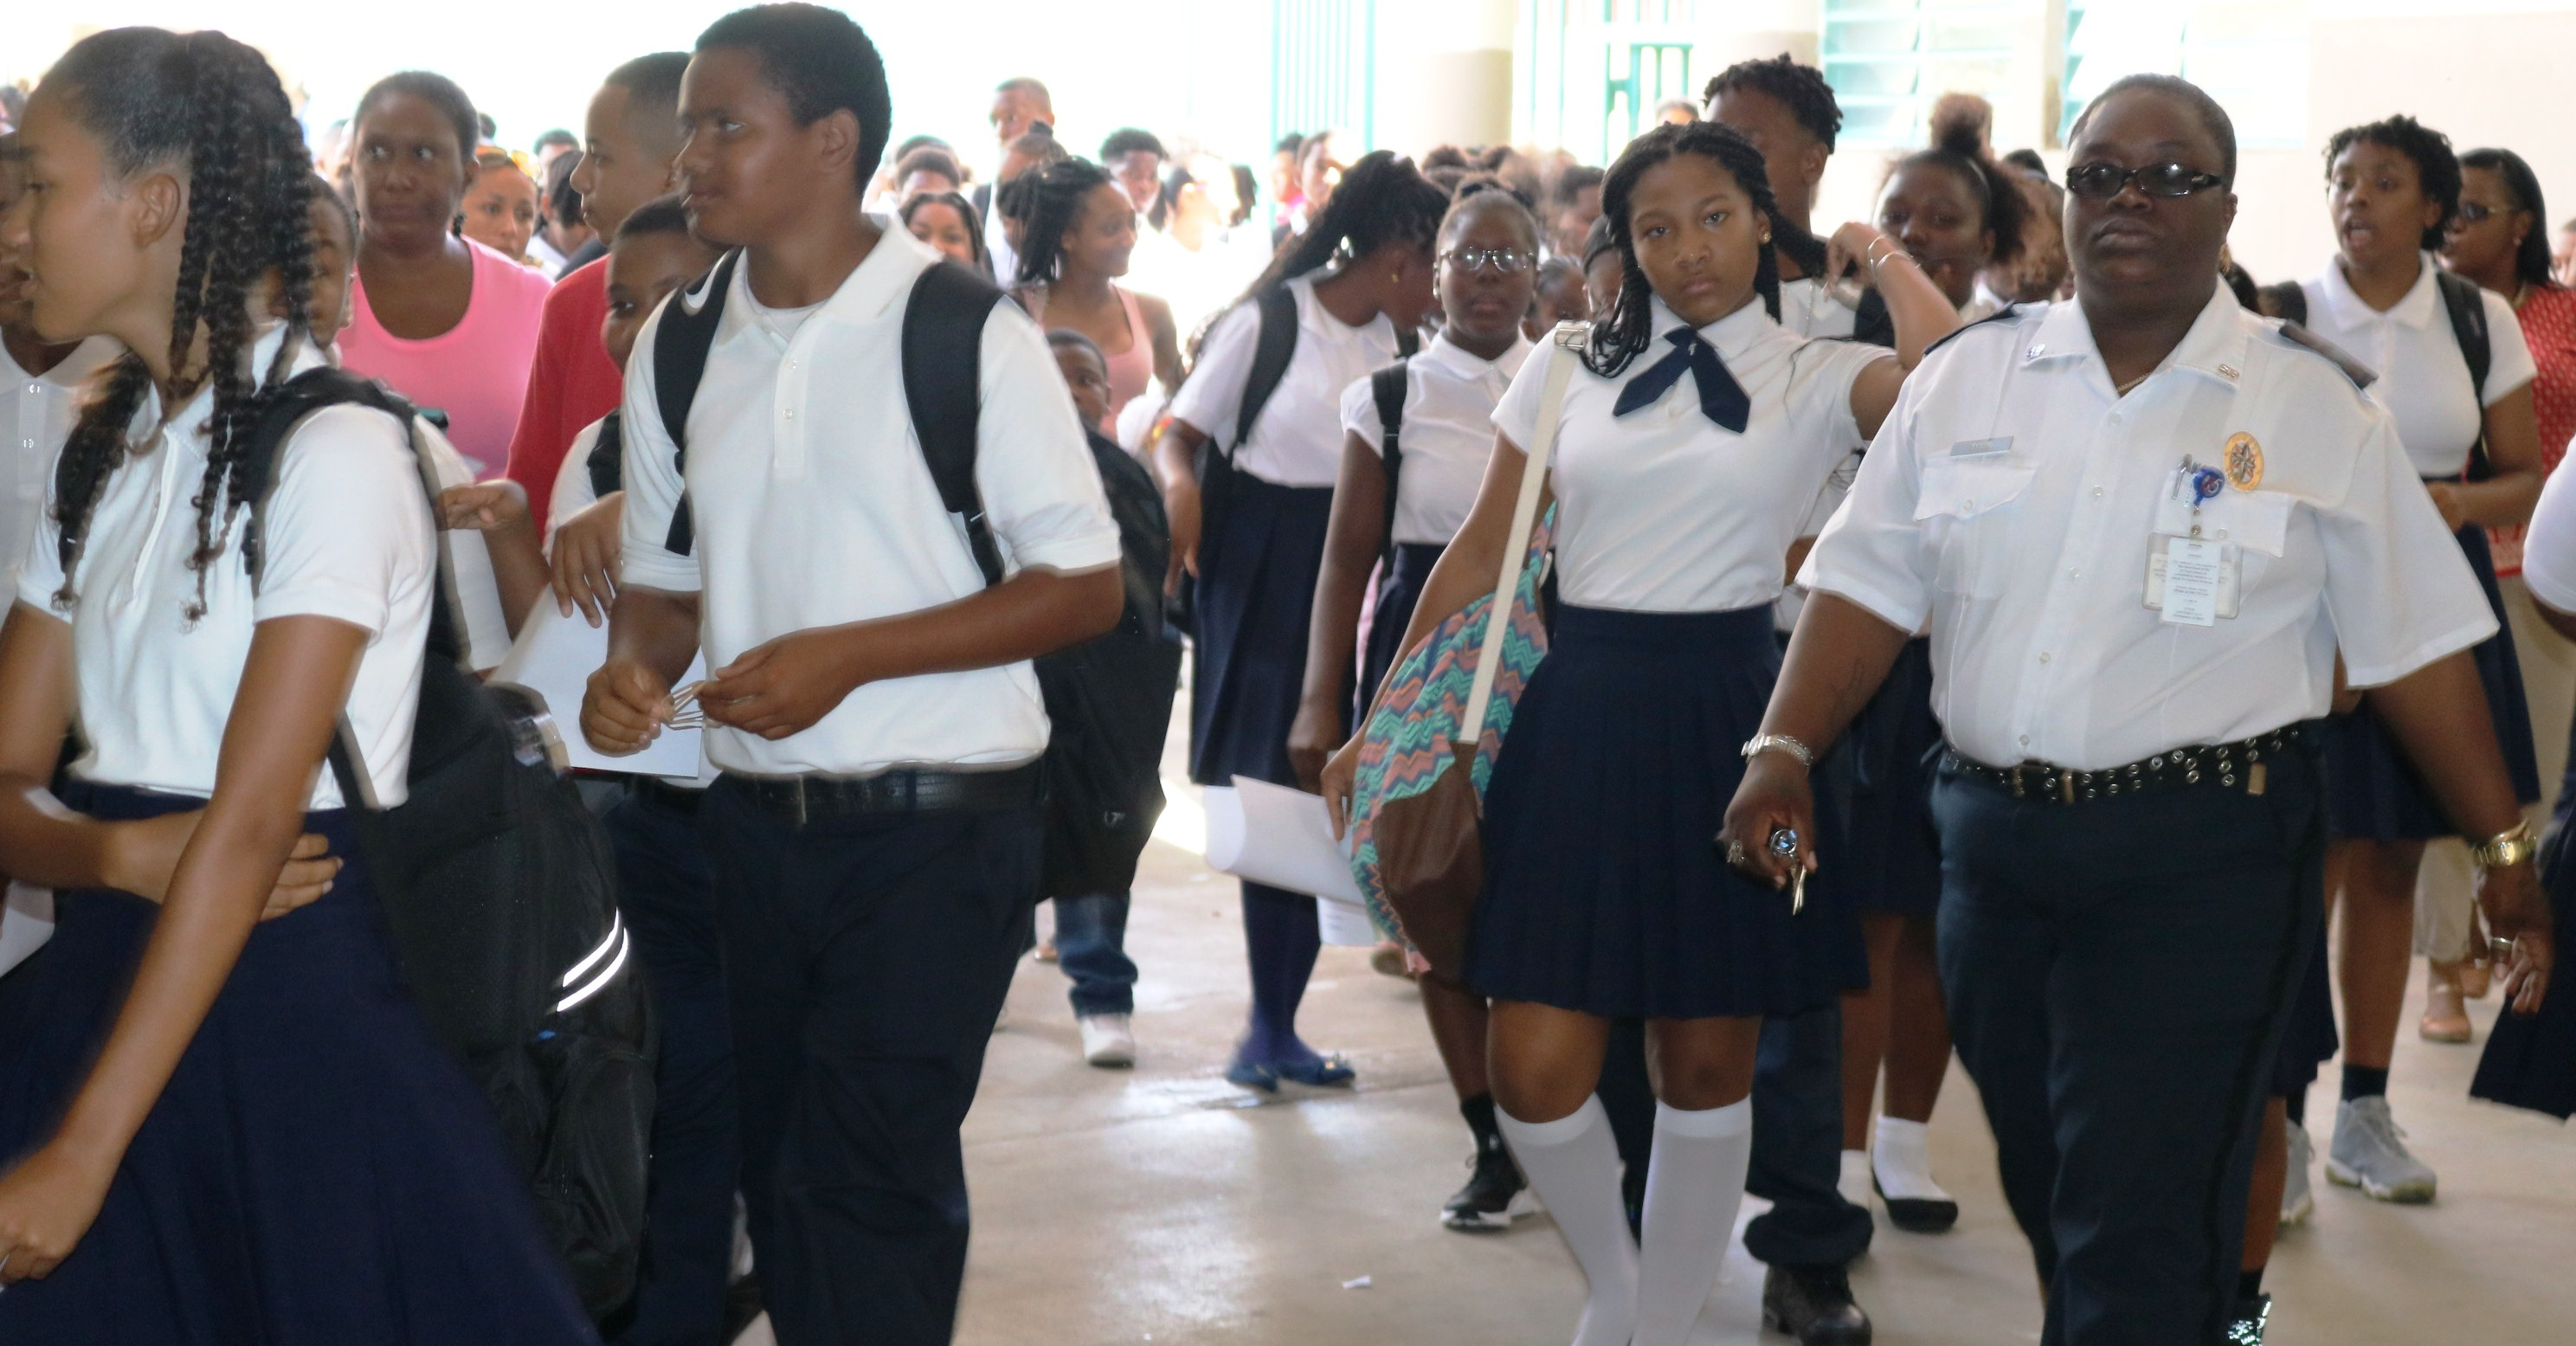 St. Croix Students Back in the Classroom